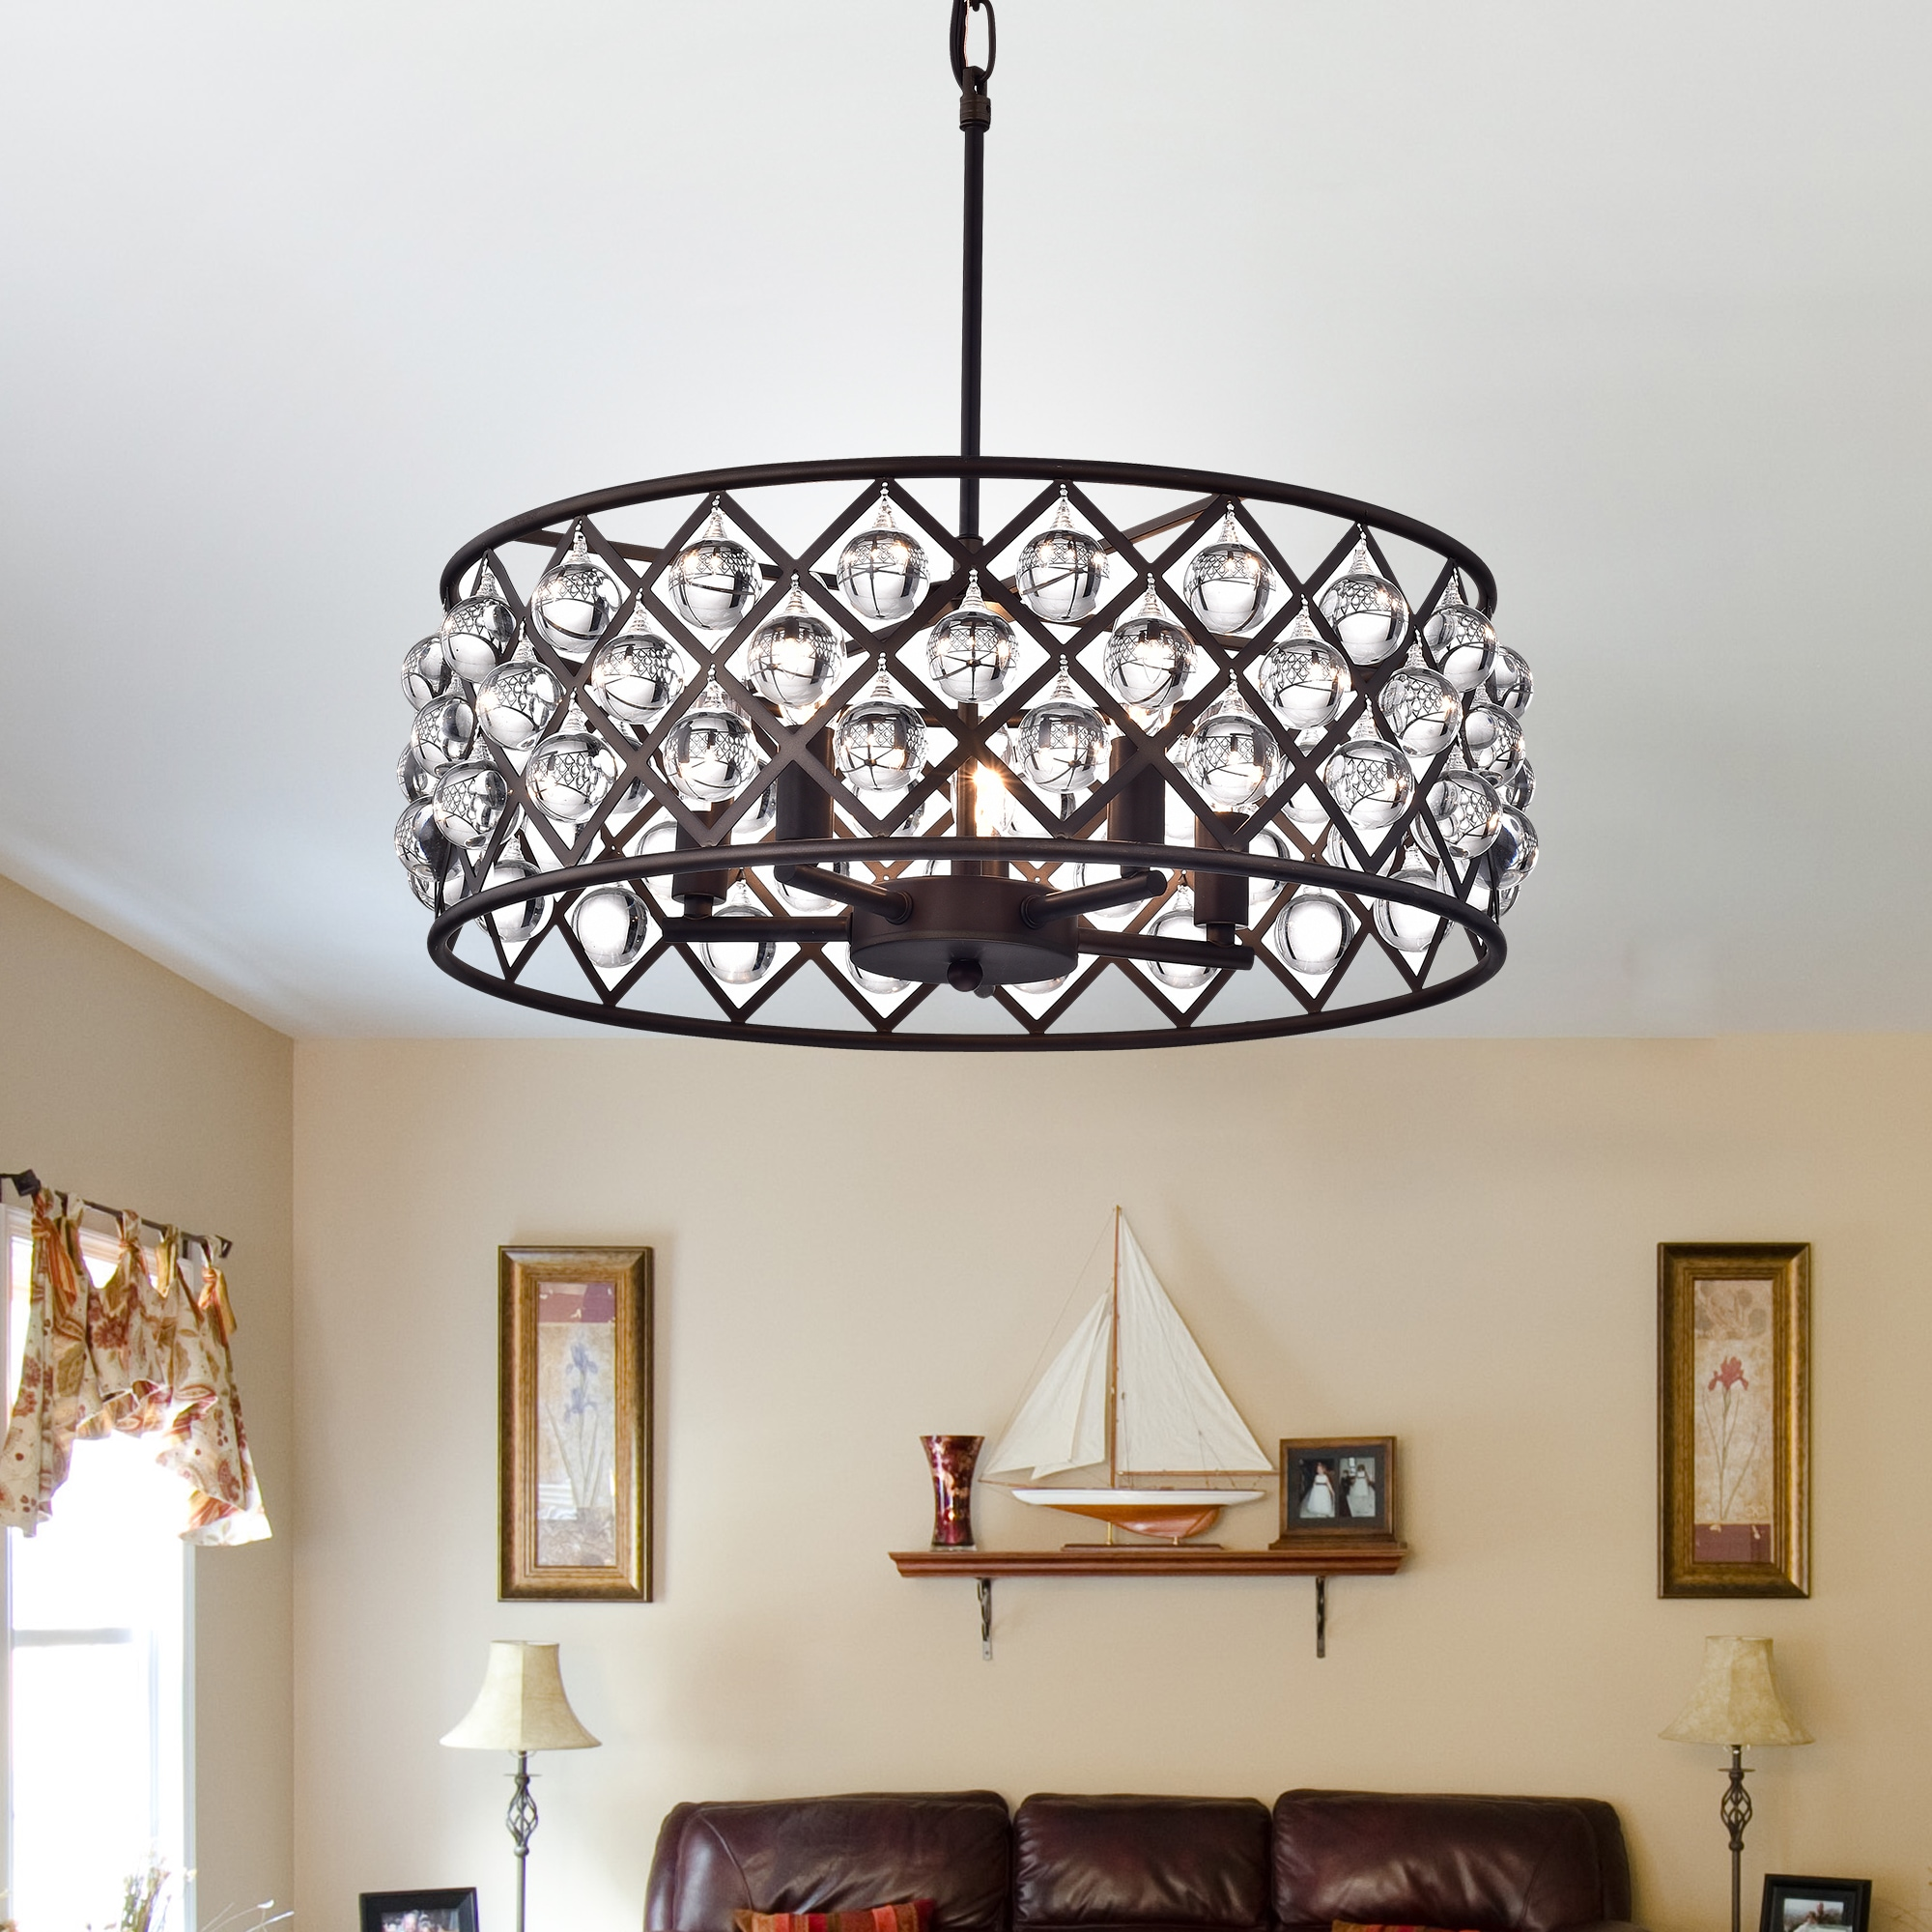 Warehouse of tiffany antique bronze crystalmetal 185 inch round warehouse of tiffany antique bronze crystalmetal 185 inch round drum chandelier free shipping today overstock 19967634 arubaitofo Choice Image